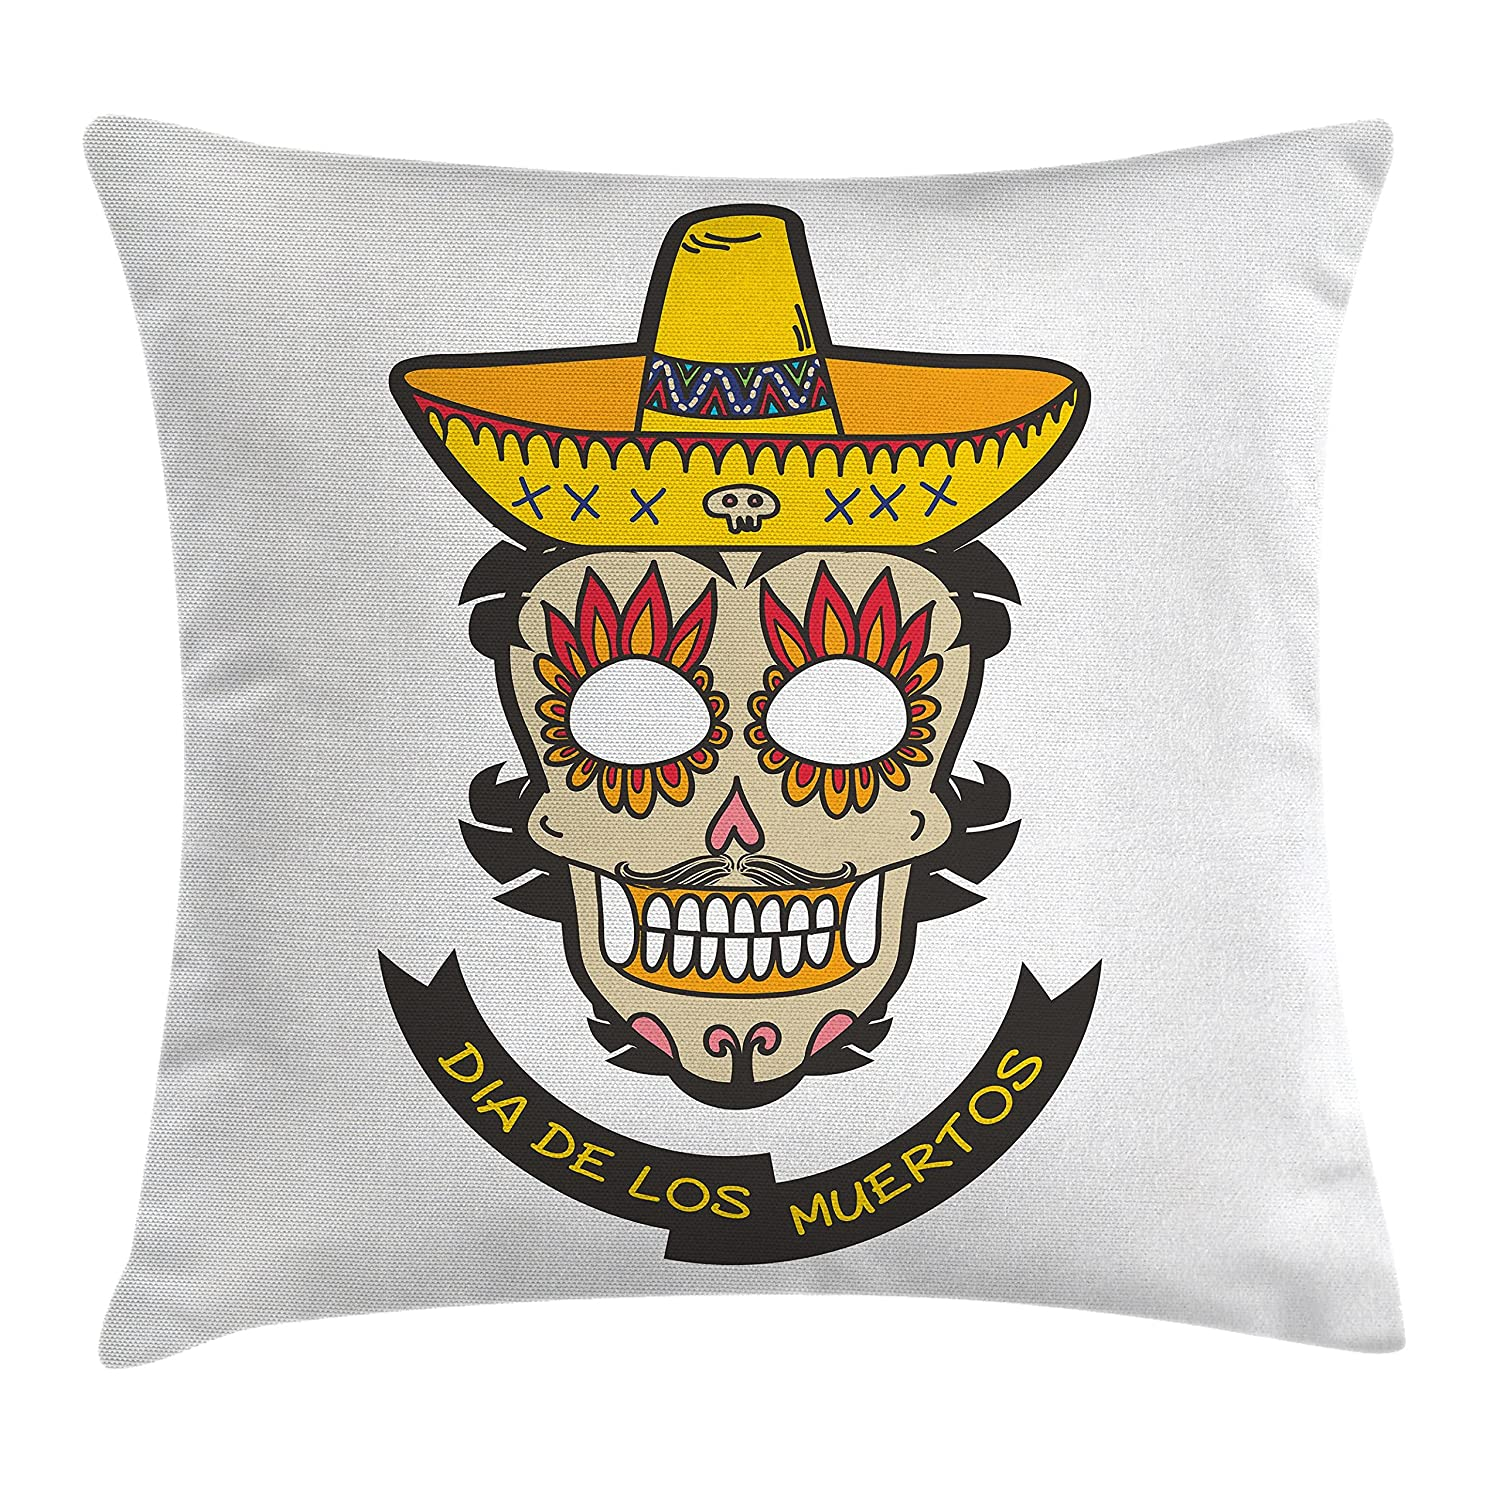 White Ivory and Yellow Colorful Skull with Sombrero and Moustache and Fire Eyes Decorative Square Accent Pillow Case Ambesonne Day of The Dead Decor Throw Pillow Cushion Cover 18 X 18 Inches